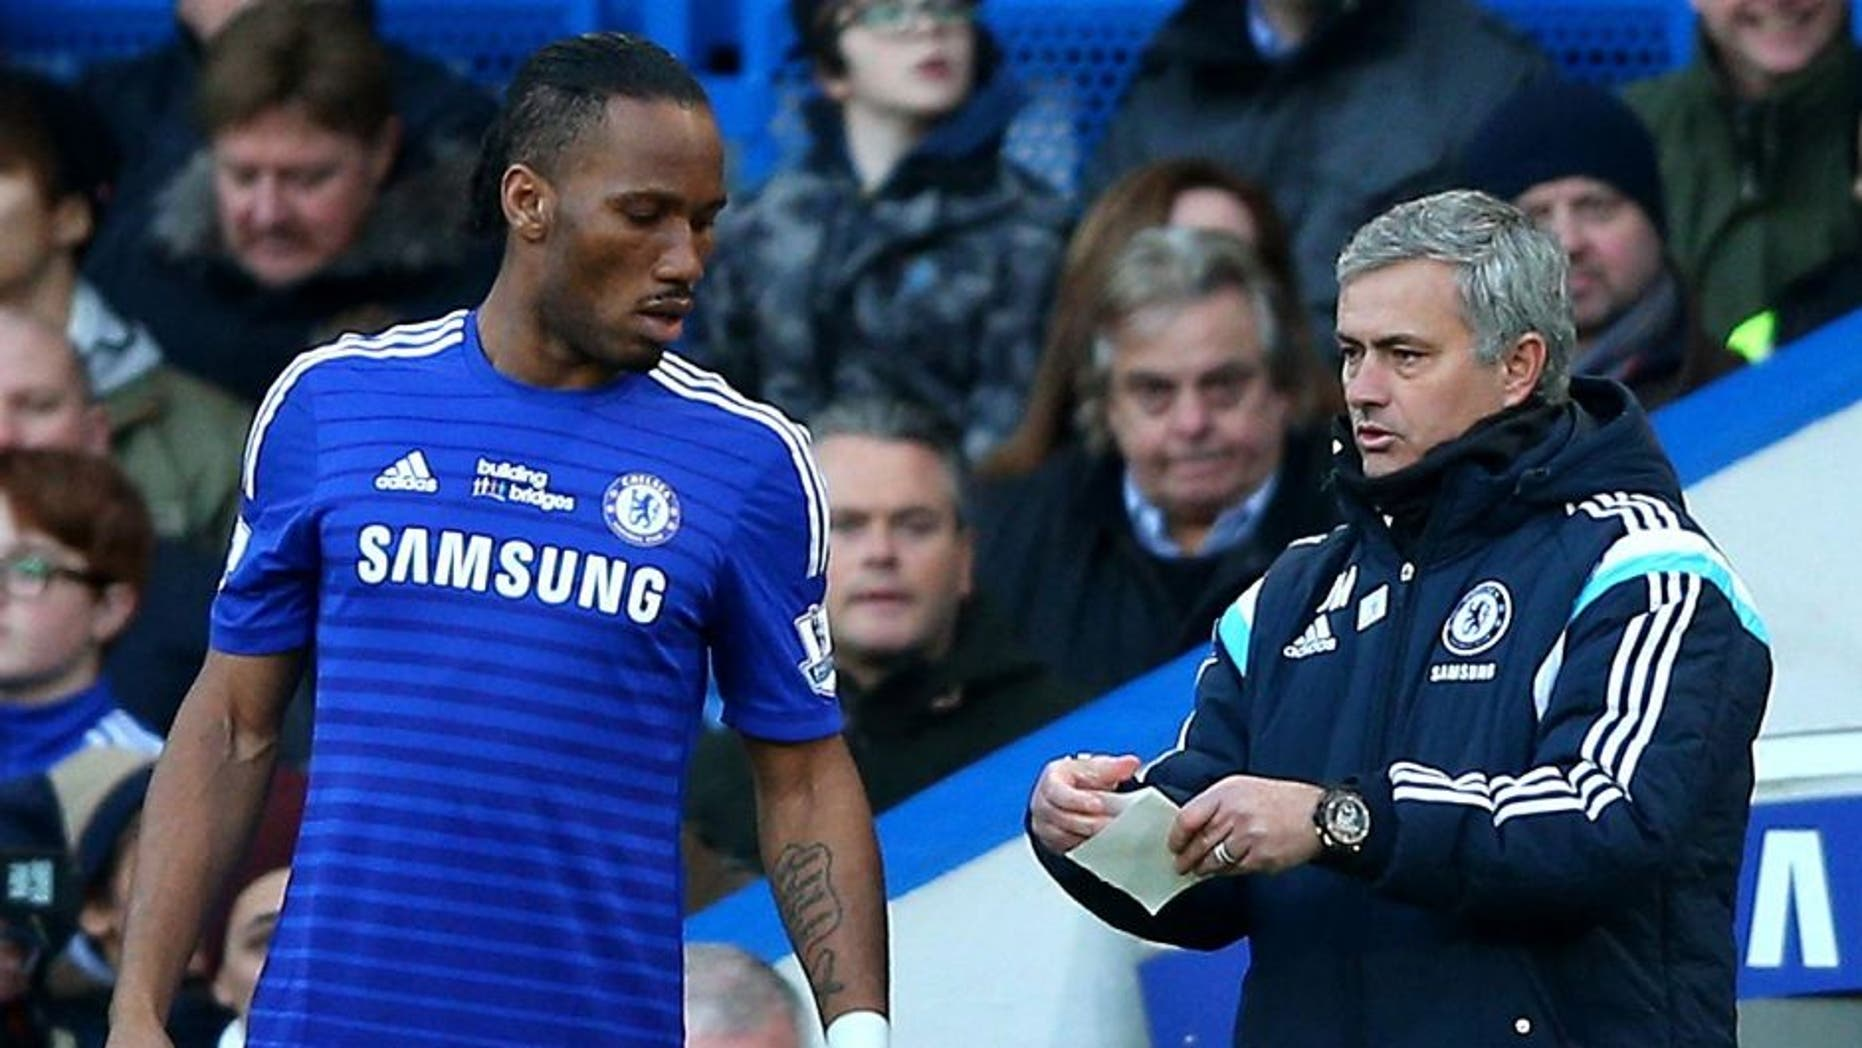 LONDON, ENGLAND - FEBRUARY 21: Jose Mourinho the manager of Chelsea sends on Didier Drogba of Chelsea as a second half substitiute during the Barclays Premier League match between Chelsea and Burnley at Stamford Bridge on February 21, 2015 in London, England. (Photo by Paul Gilham/Getty Images)